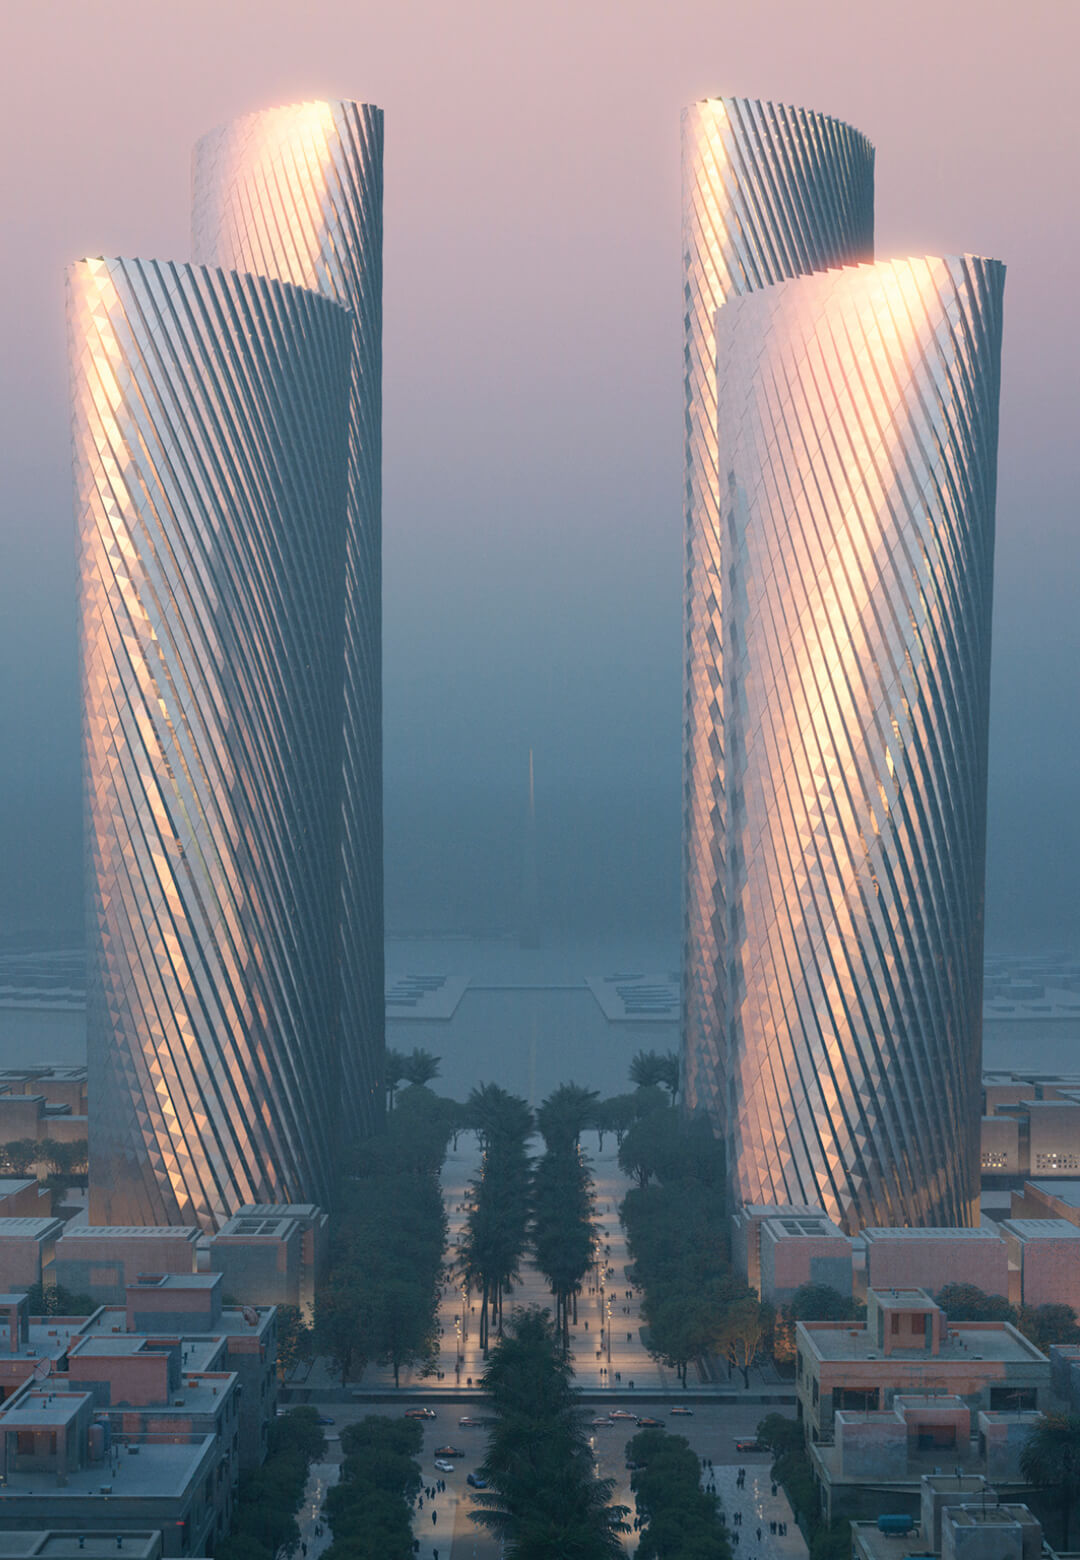 Lusail Towers- a cluster of four high-rise buildings in Qatar | Lusail Towers designed by Foster + Partners | STIRworld